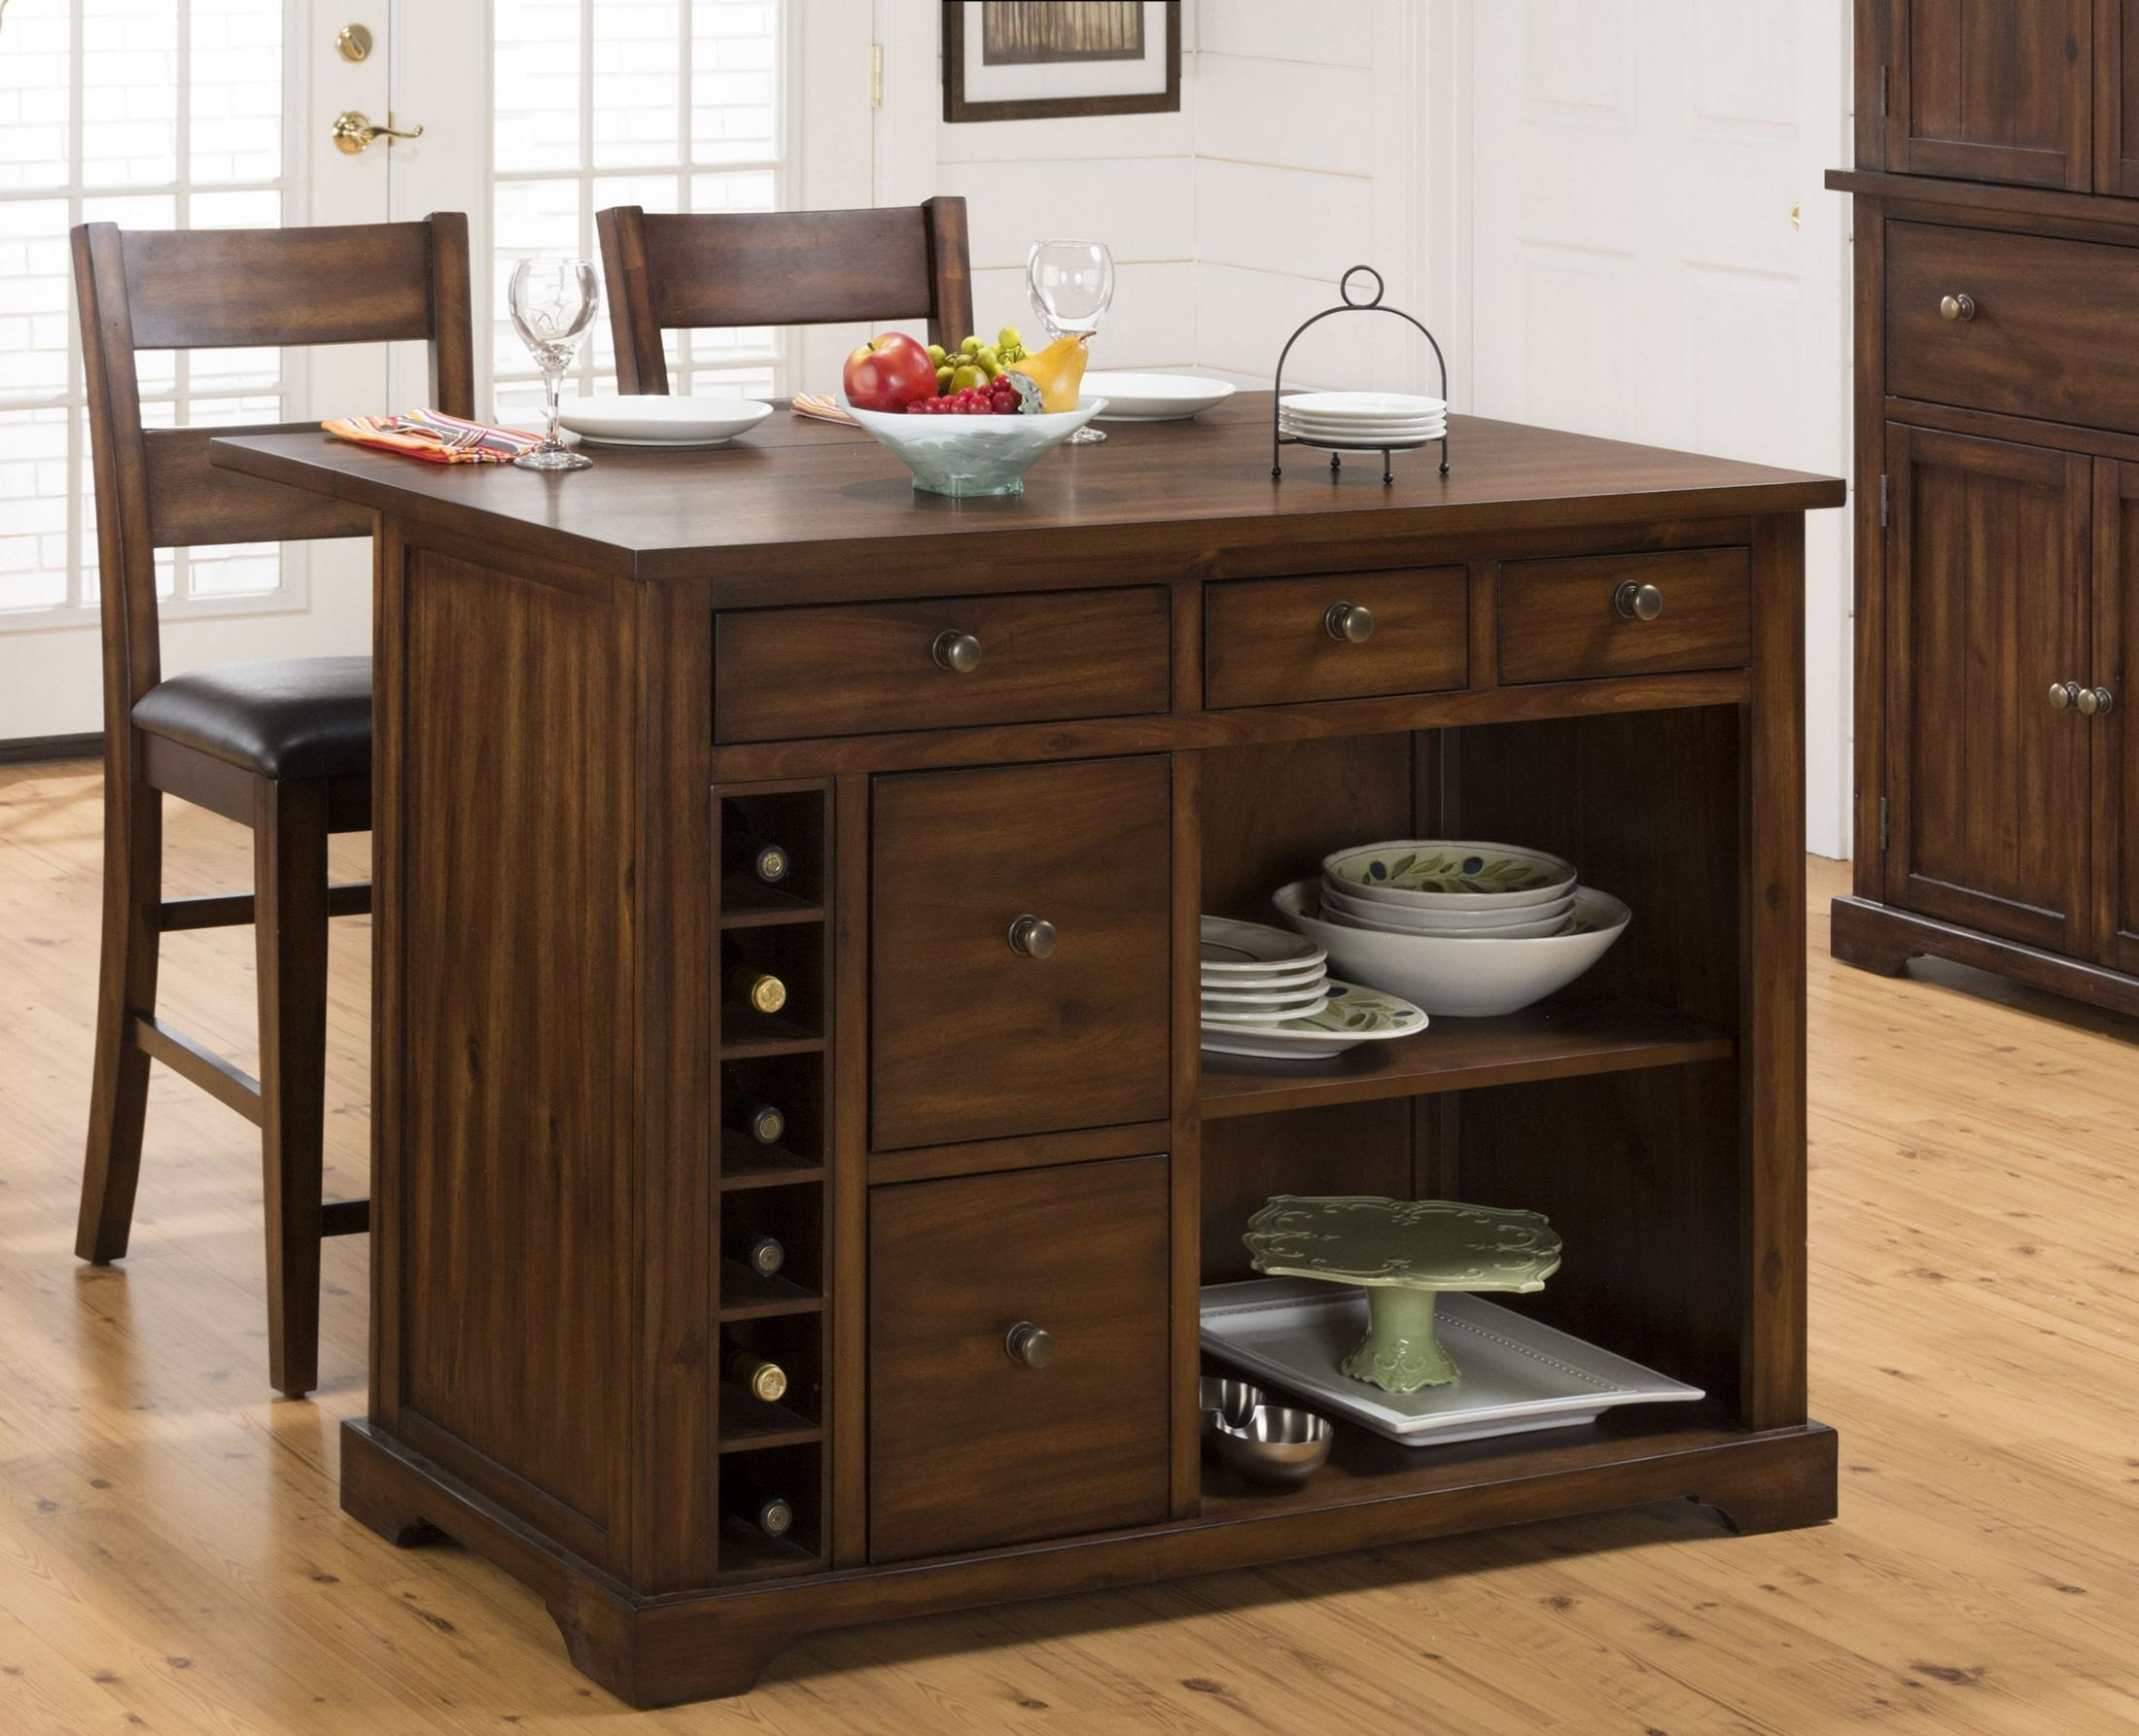 Cooke County Extendable Kitchen Island Set 581 48 Jofran